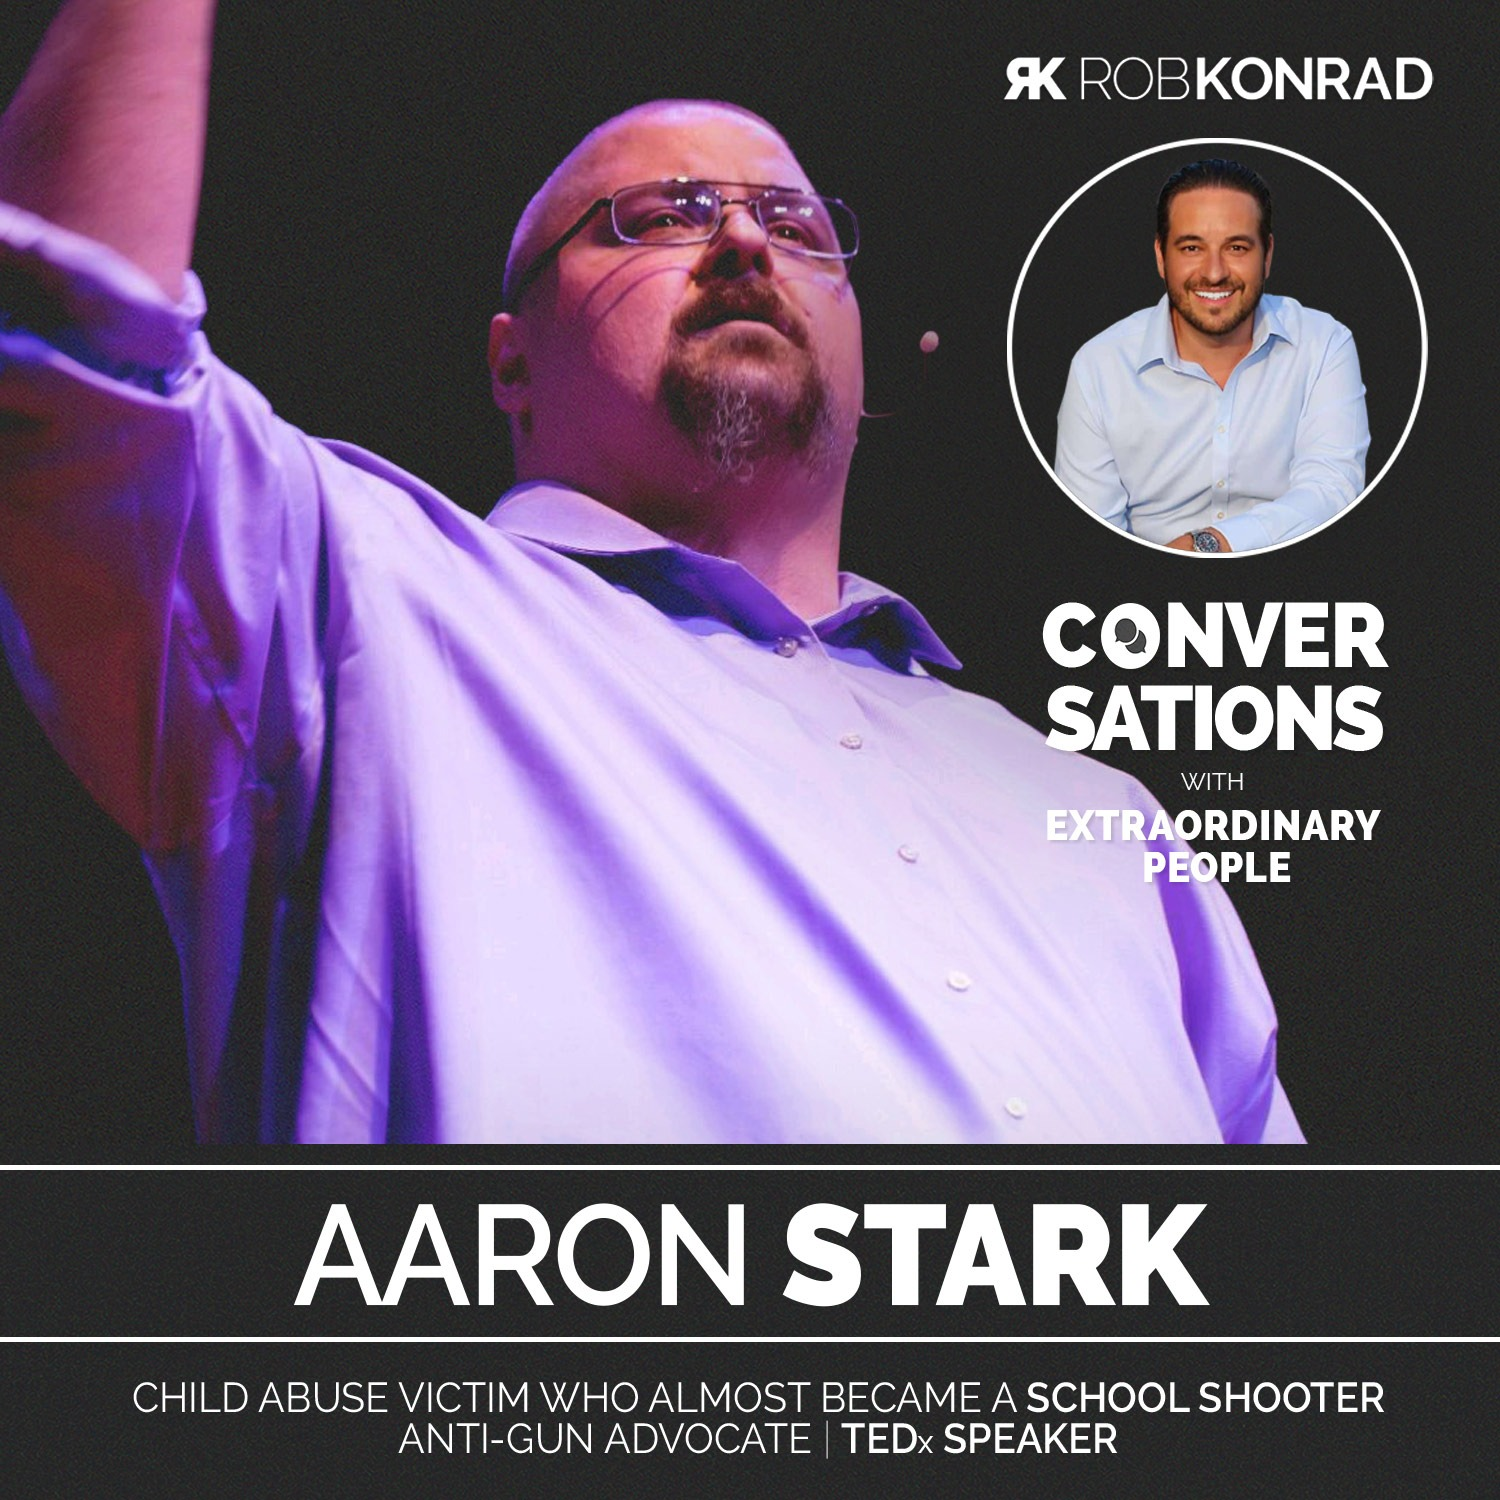 015. He Was Almost A School Shooter: Aaron Stark